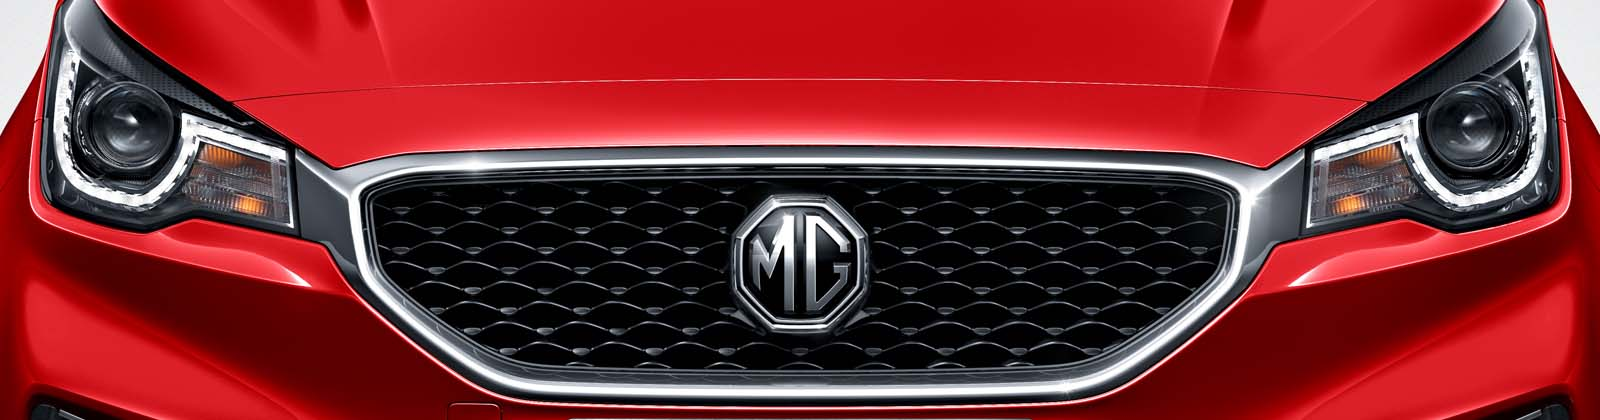 MG MG3 front grille